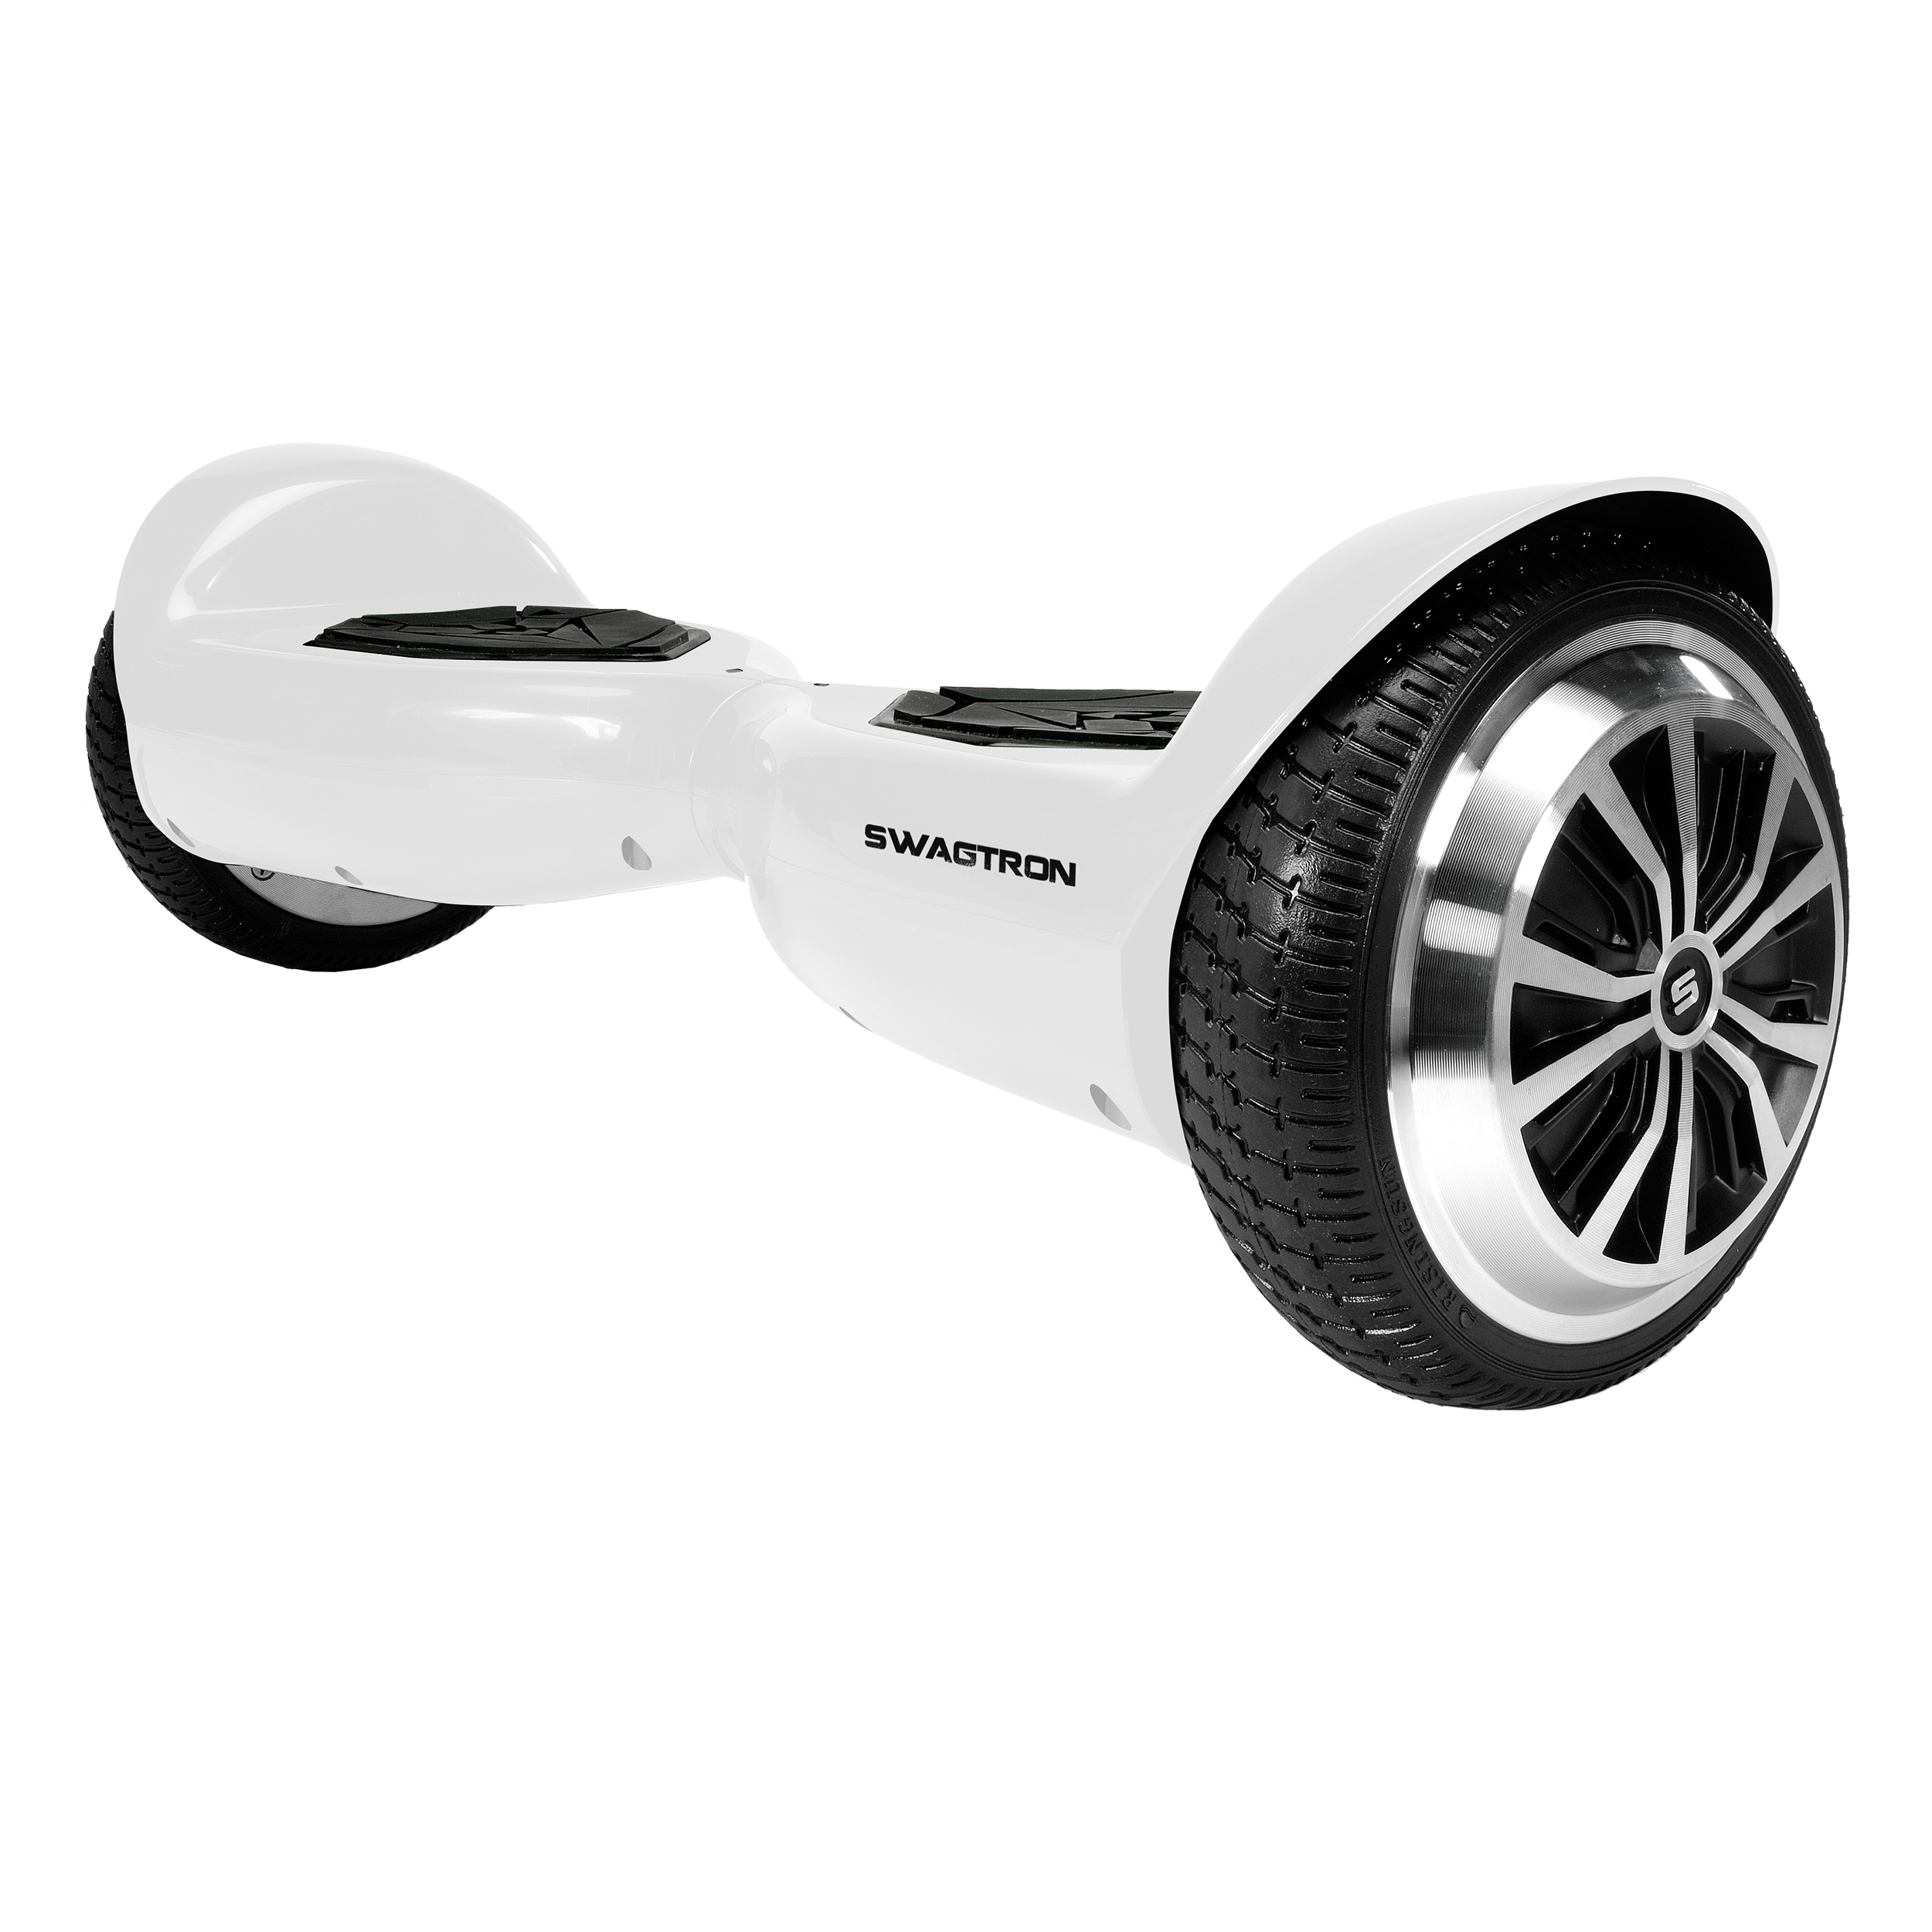 SWAGTRON-T5-Hoverboard-UL2272-Certified-Self-Balancing-Electric-